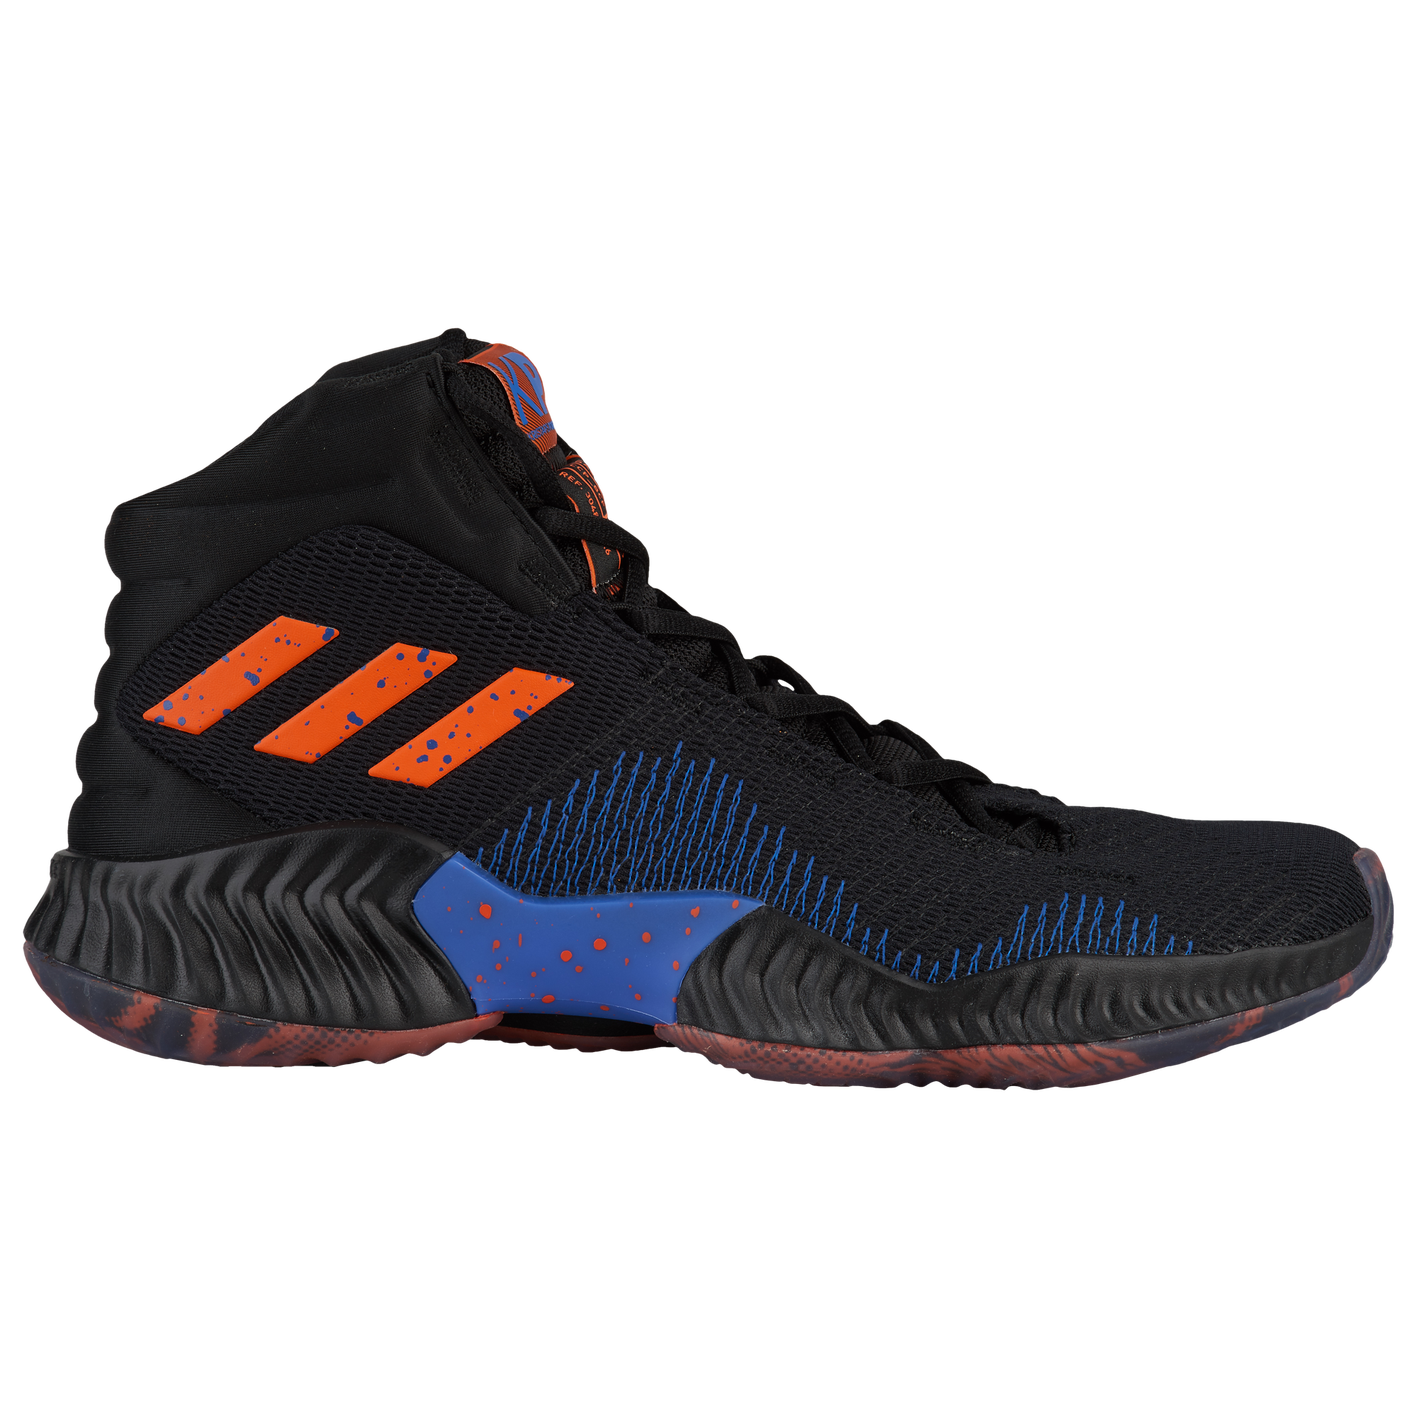 329eefc2c adidas Pro Bounce Mid 2018 - Men s - Basketball - Shoes - Black ...